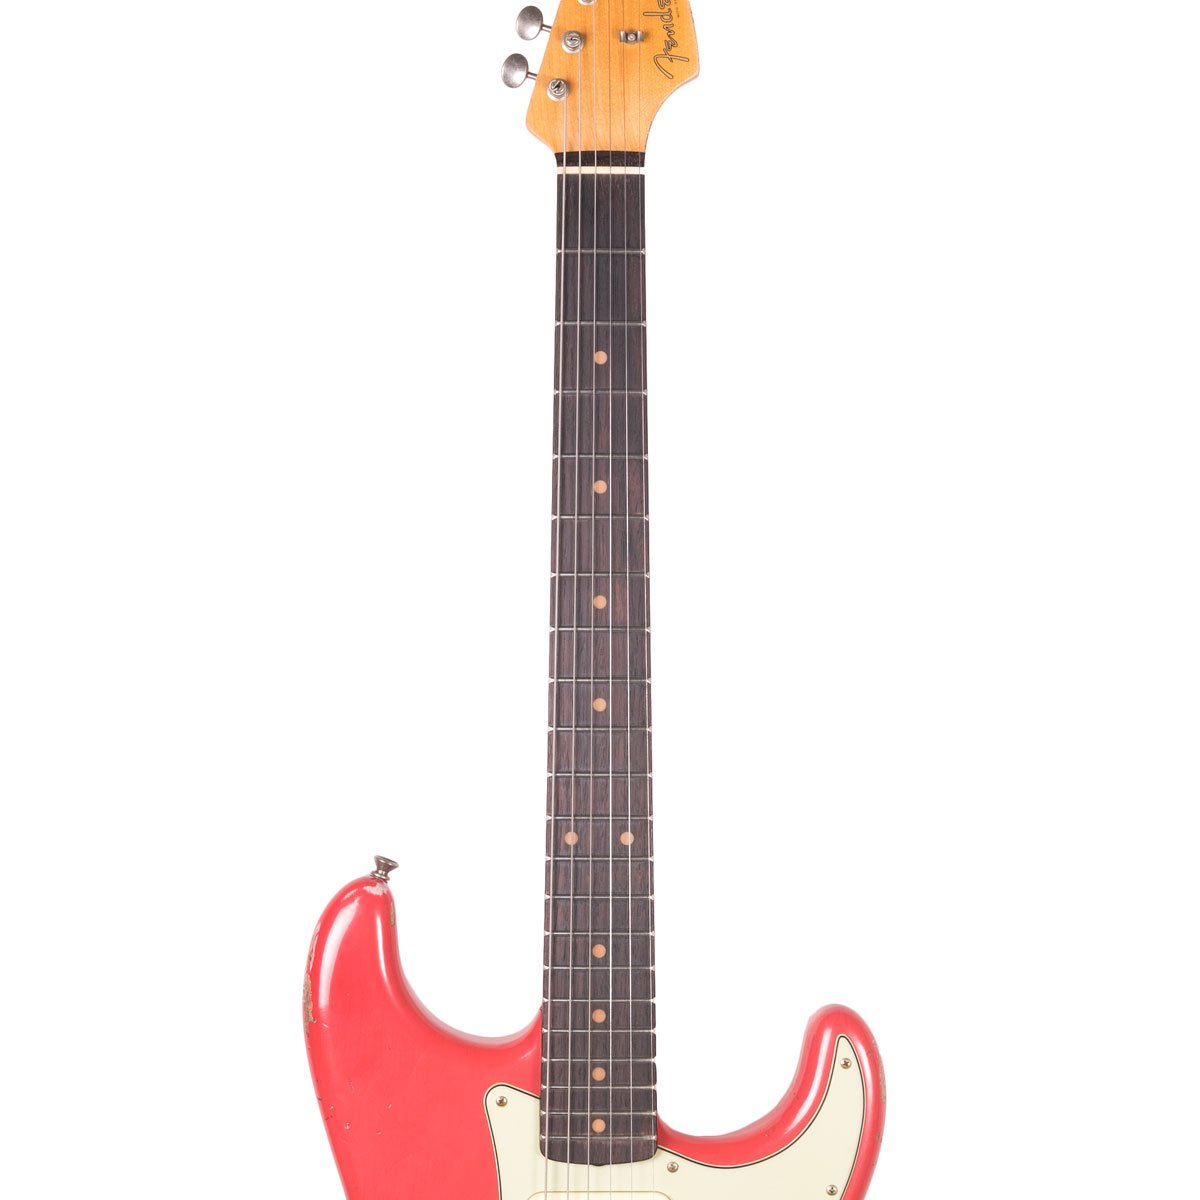 Fender Custom Shop - 1960 Relic Stratocaster - Aged Fiesta Red | Lucky Fret Music Co.